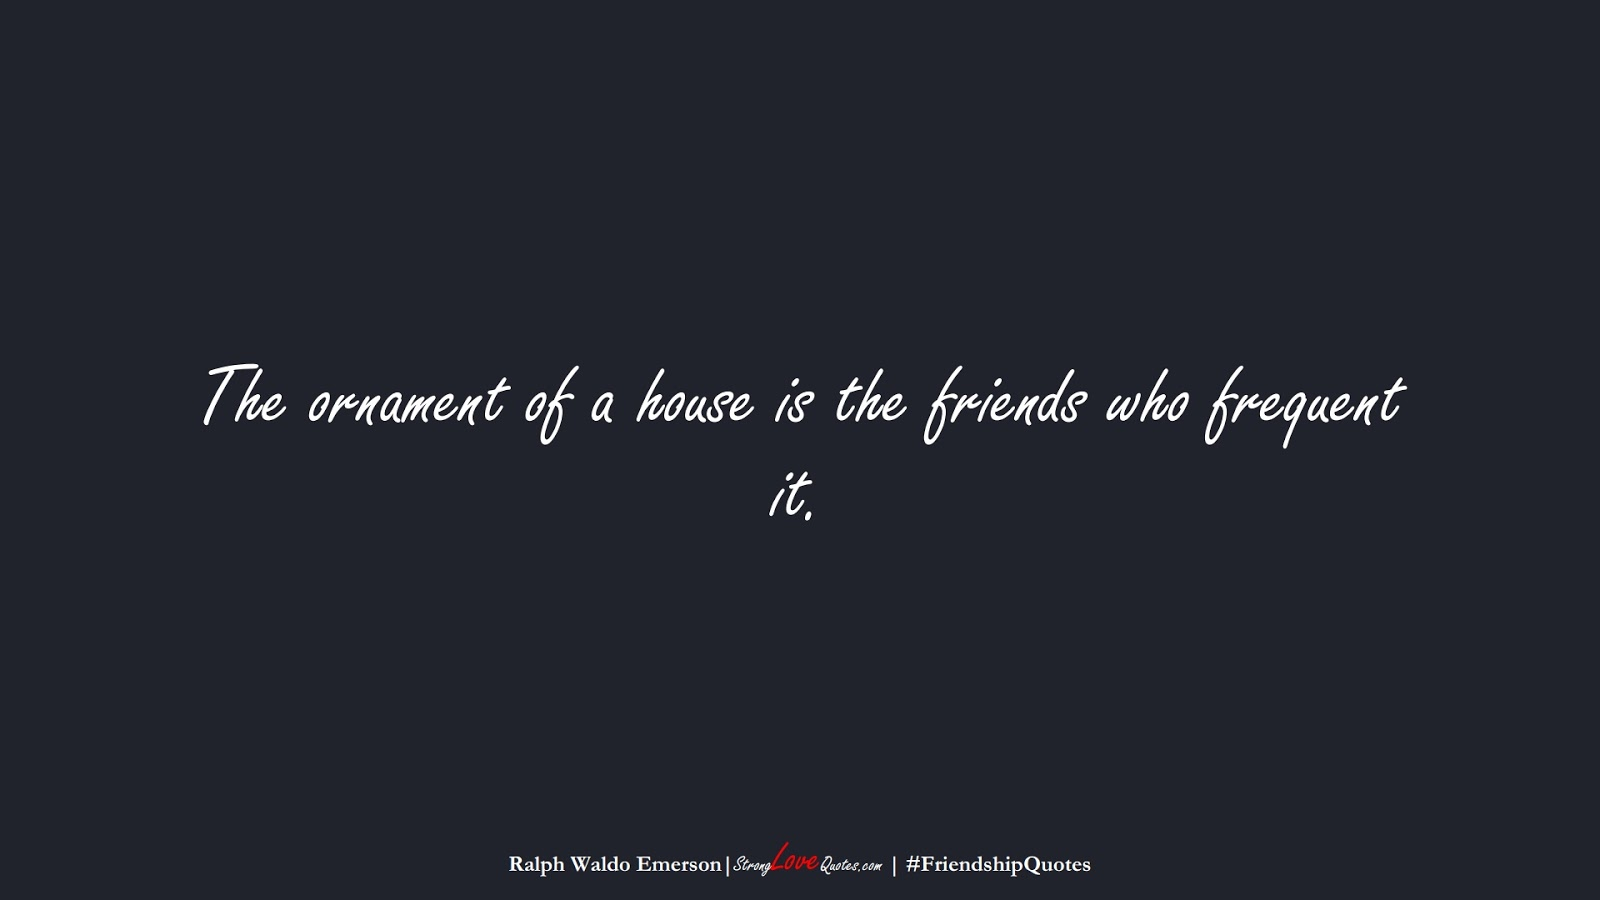 The ornament of a house is the friends who frequent it. (Ralph Waldo Emerson);  #FriendshipQuotes